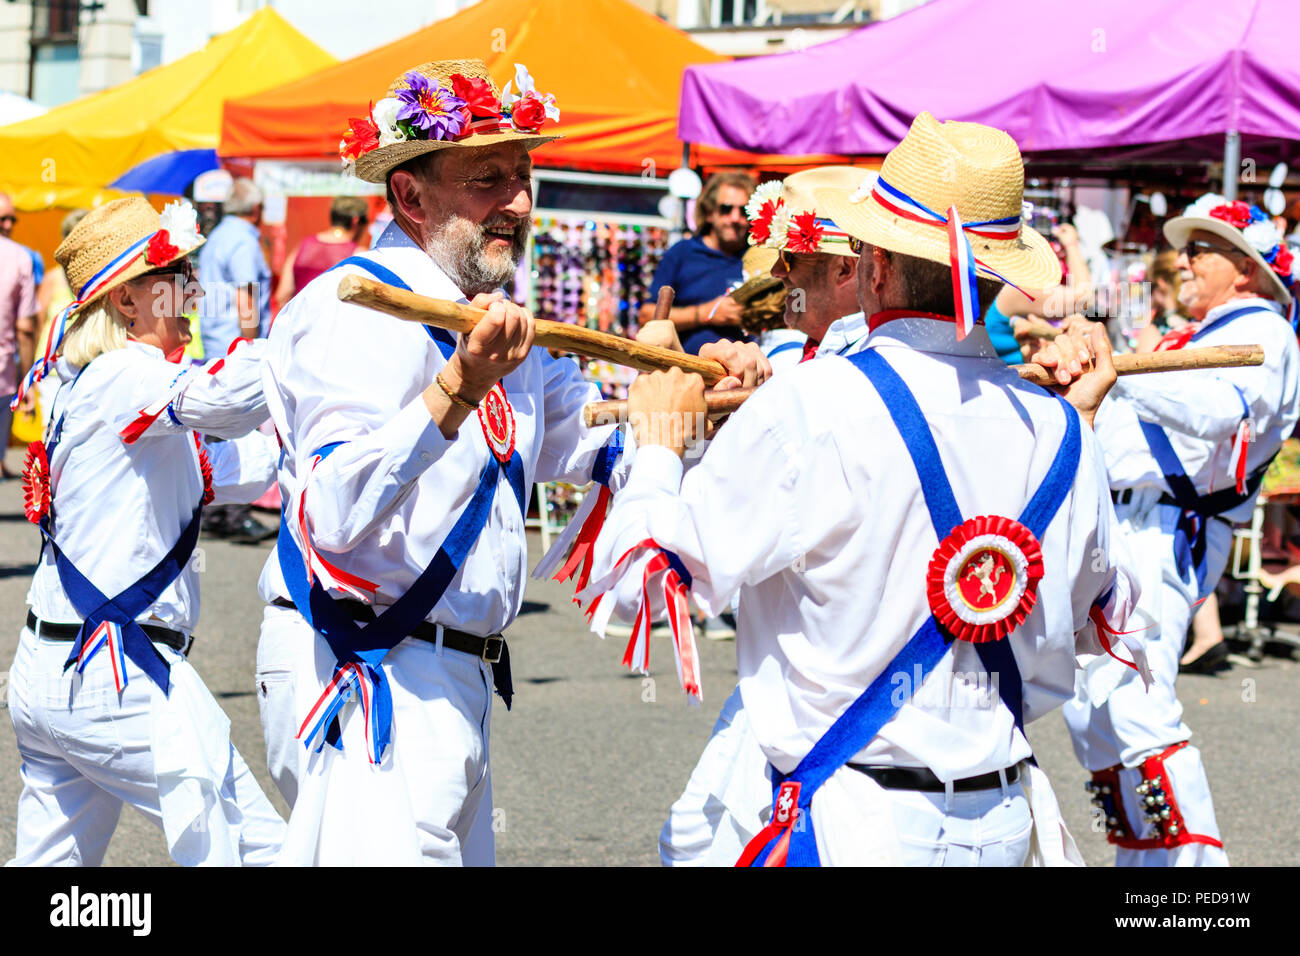 Traditional English folk dancers from the East Kent Morris side dancing in the street on a hot summer day during the Sandwich Folk and Ale Festival - Stock Image